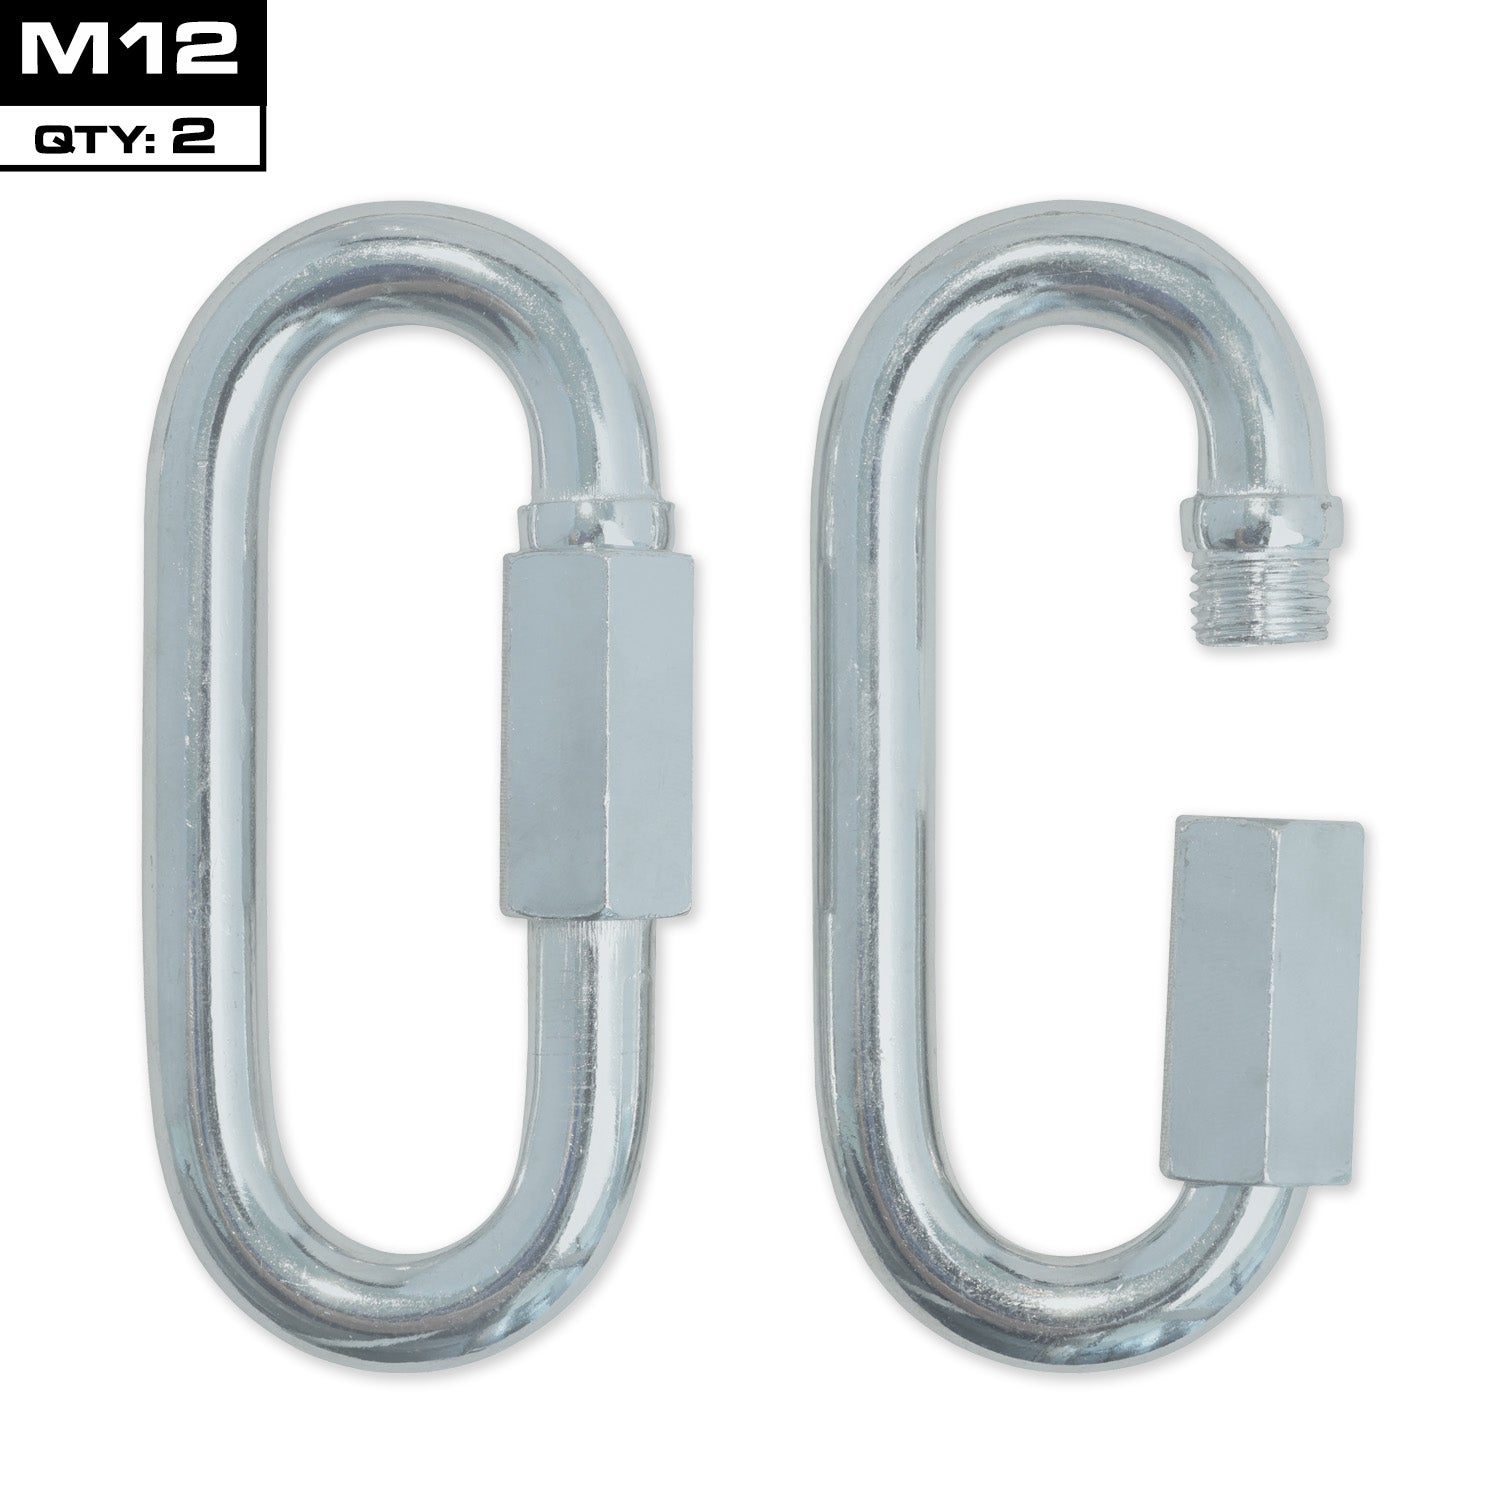 Meister Quick Link Screwlock Carabiners - M12 x 2 Pack